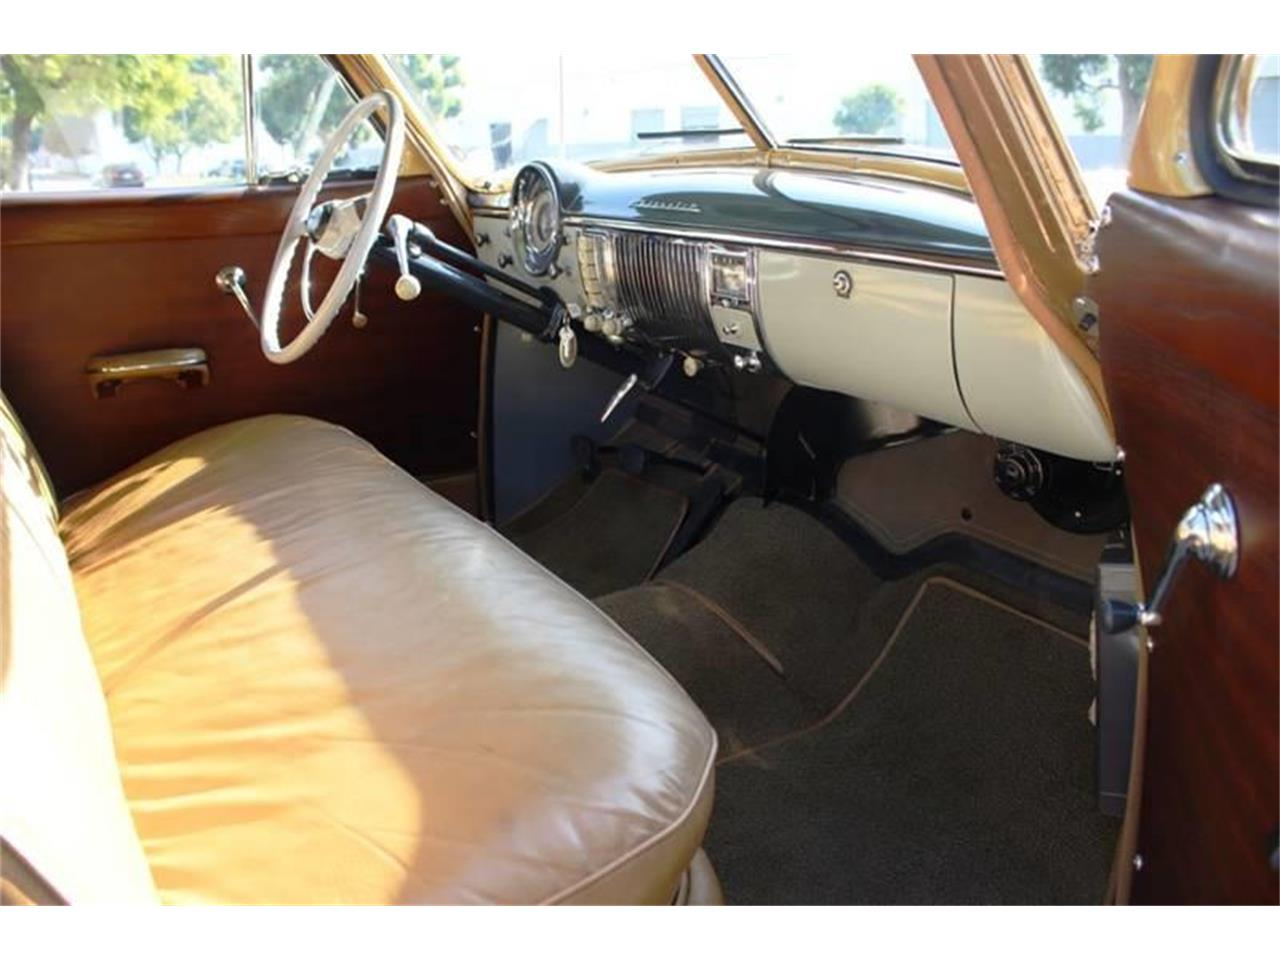 1950 Chevrolet Styleline Deluxe for sale in La Verne, CA – photo 38